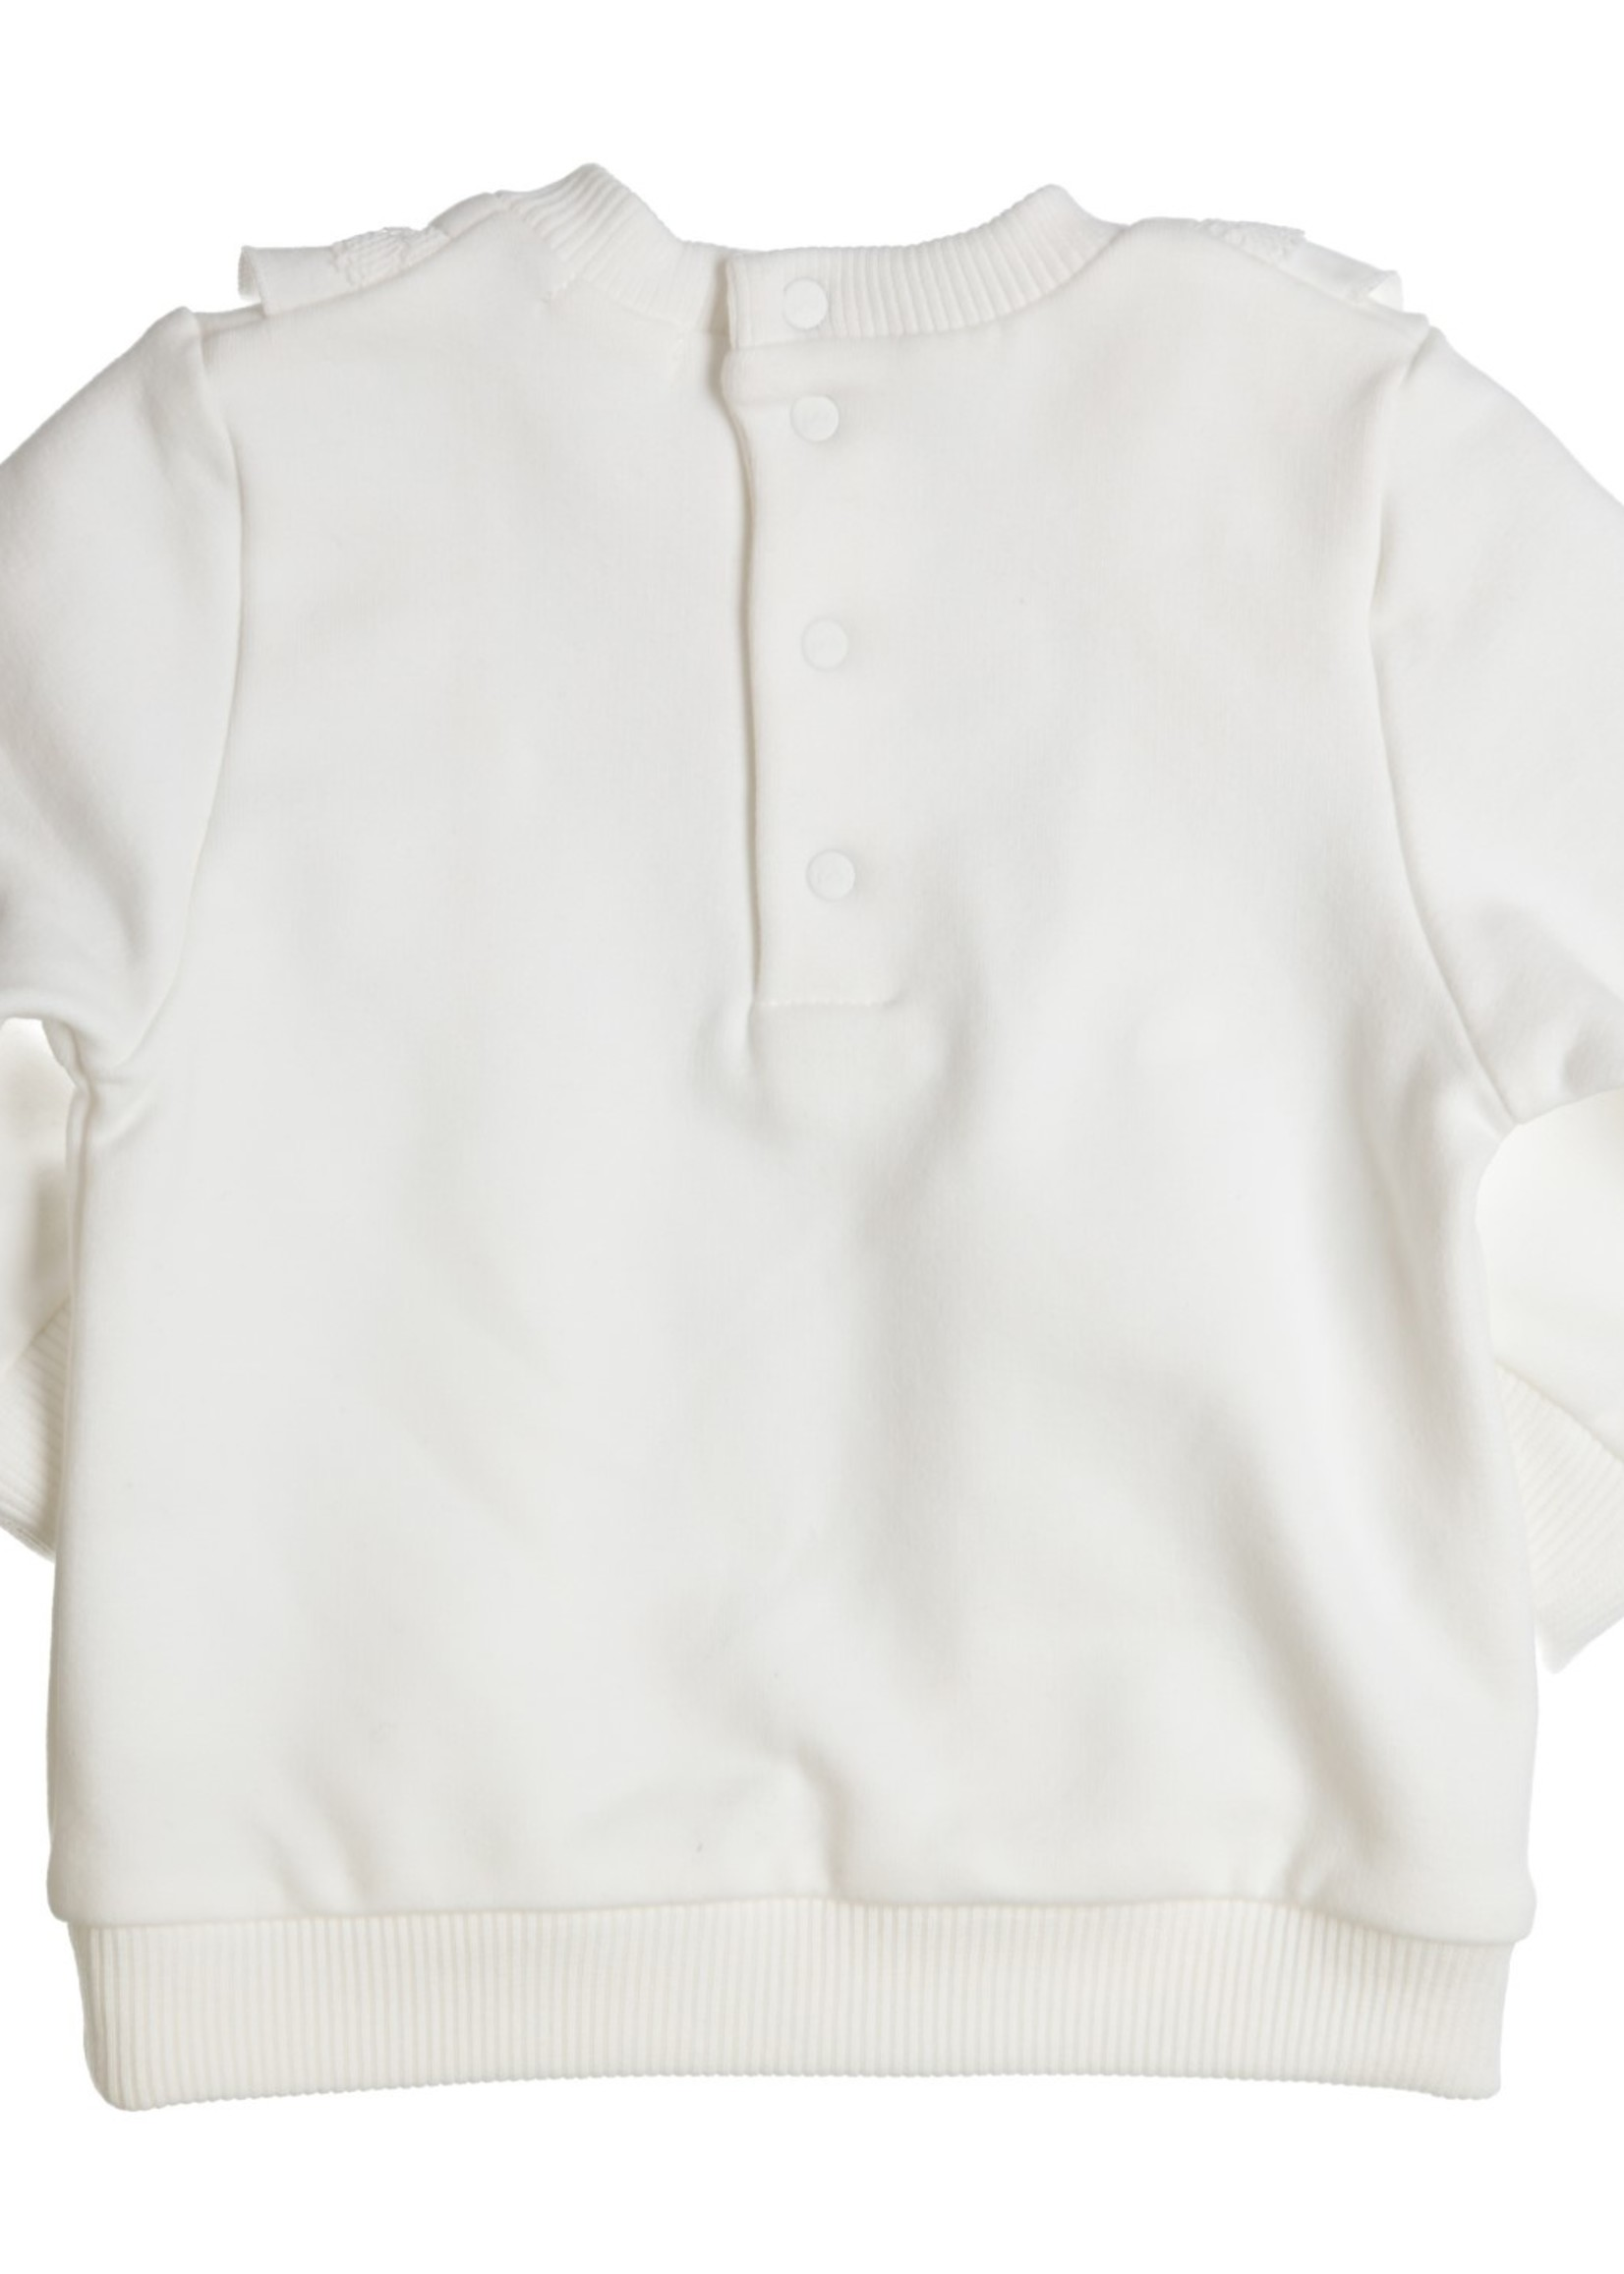 Gymp Gymp sweater flounces and lace off white